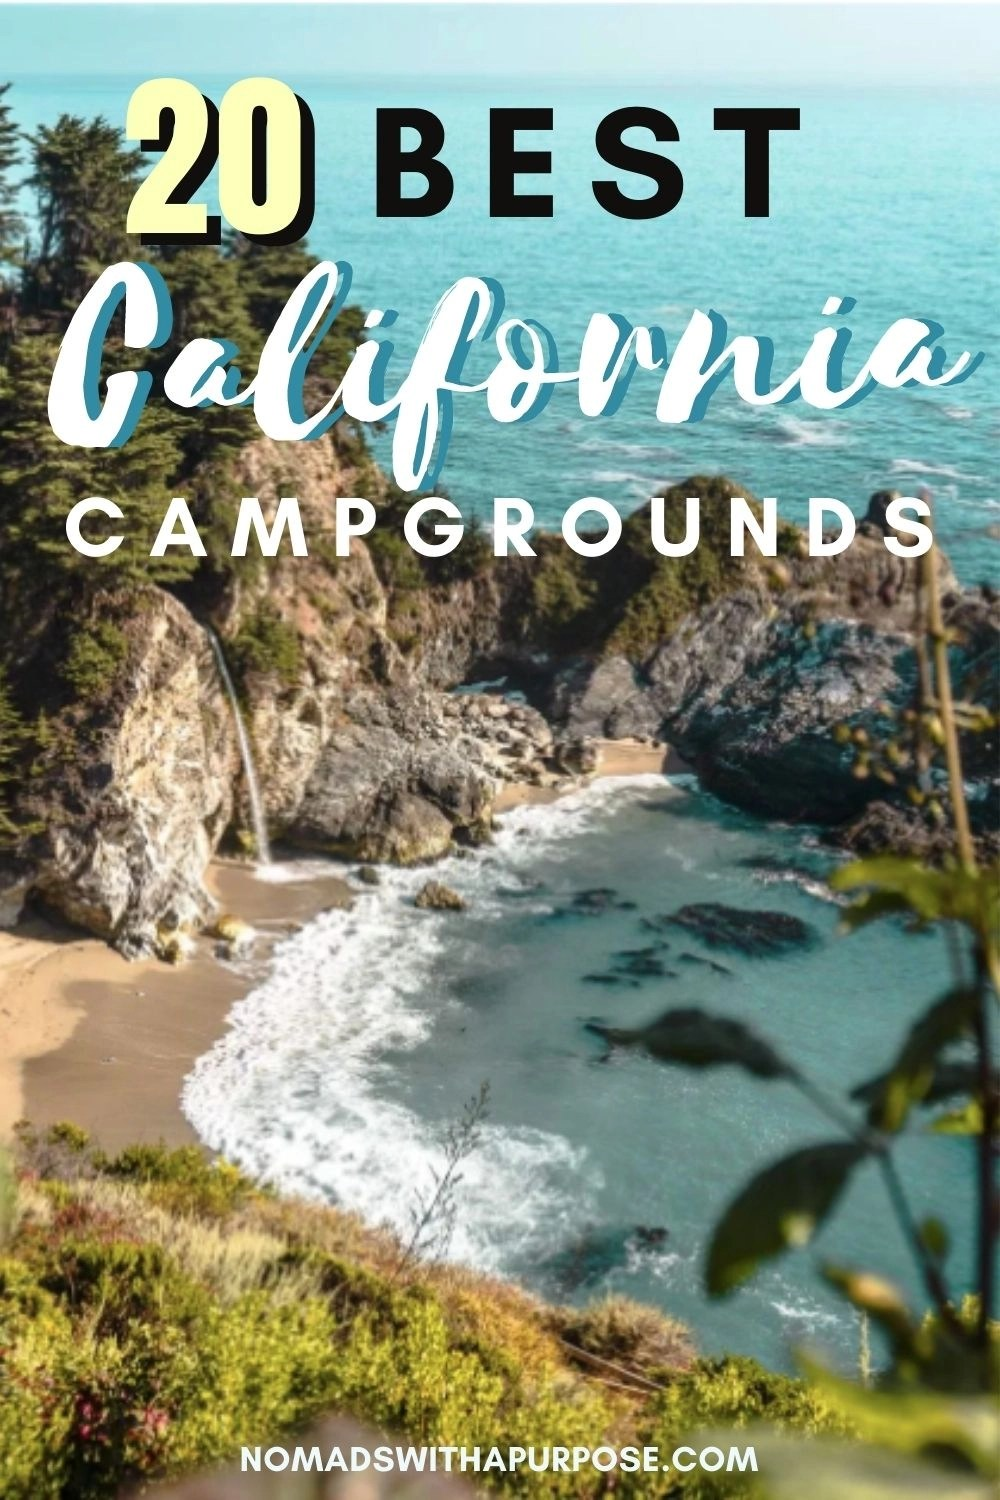 Best 20 California Campgrounds